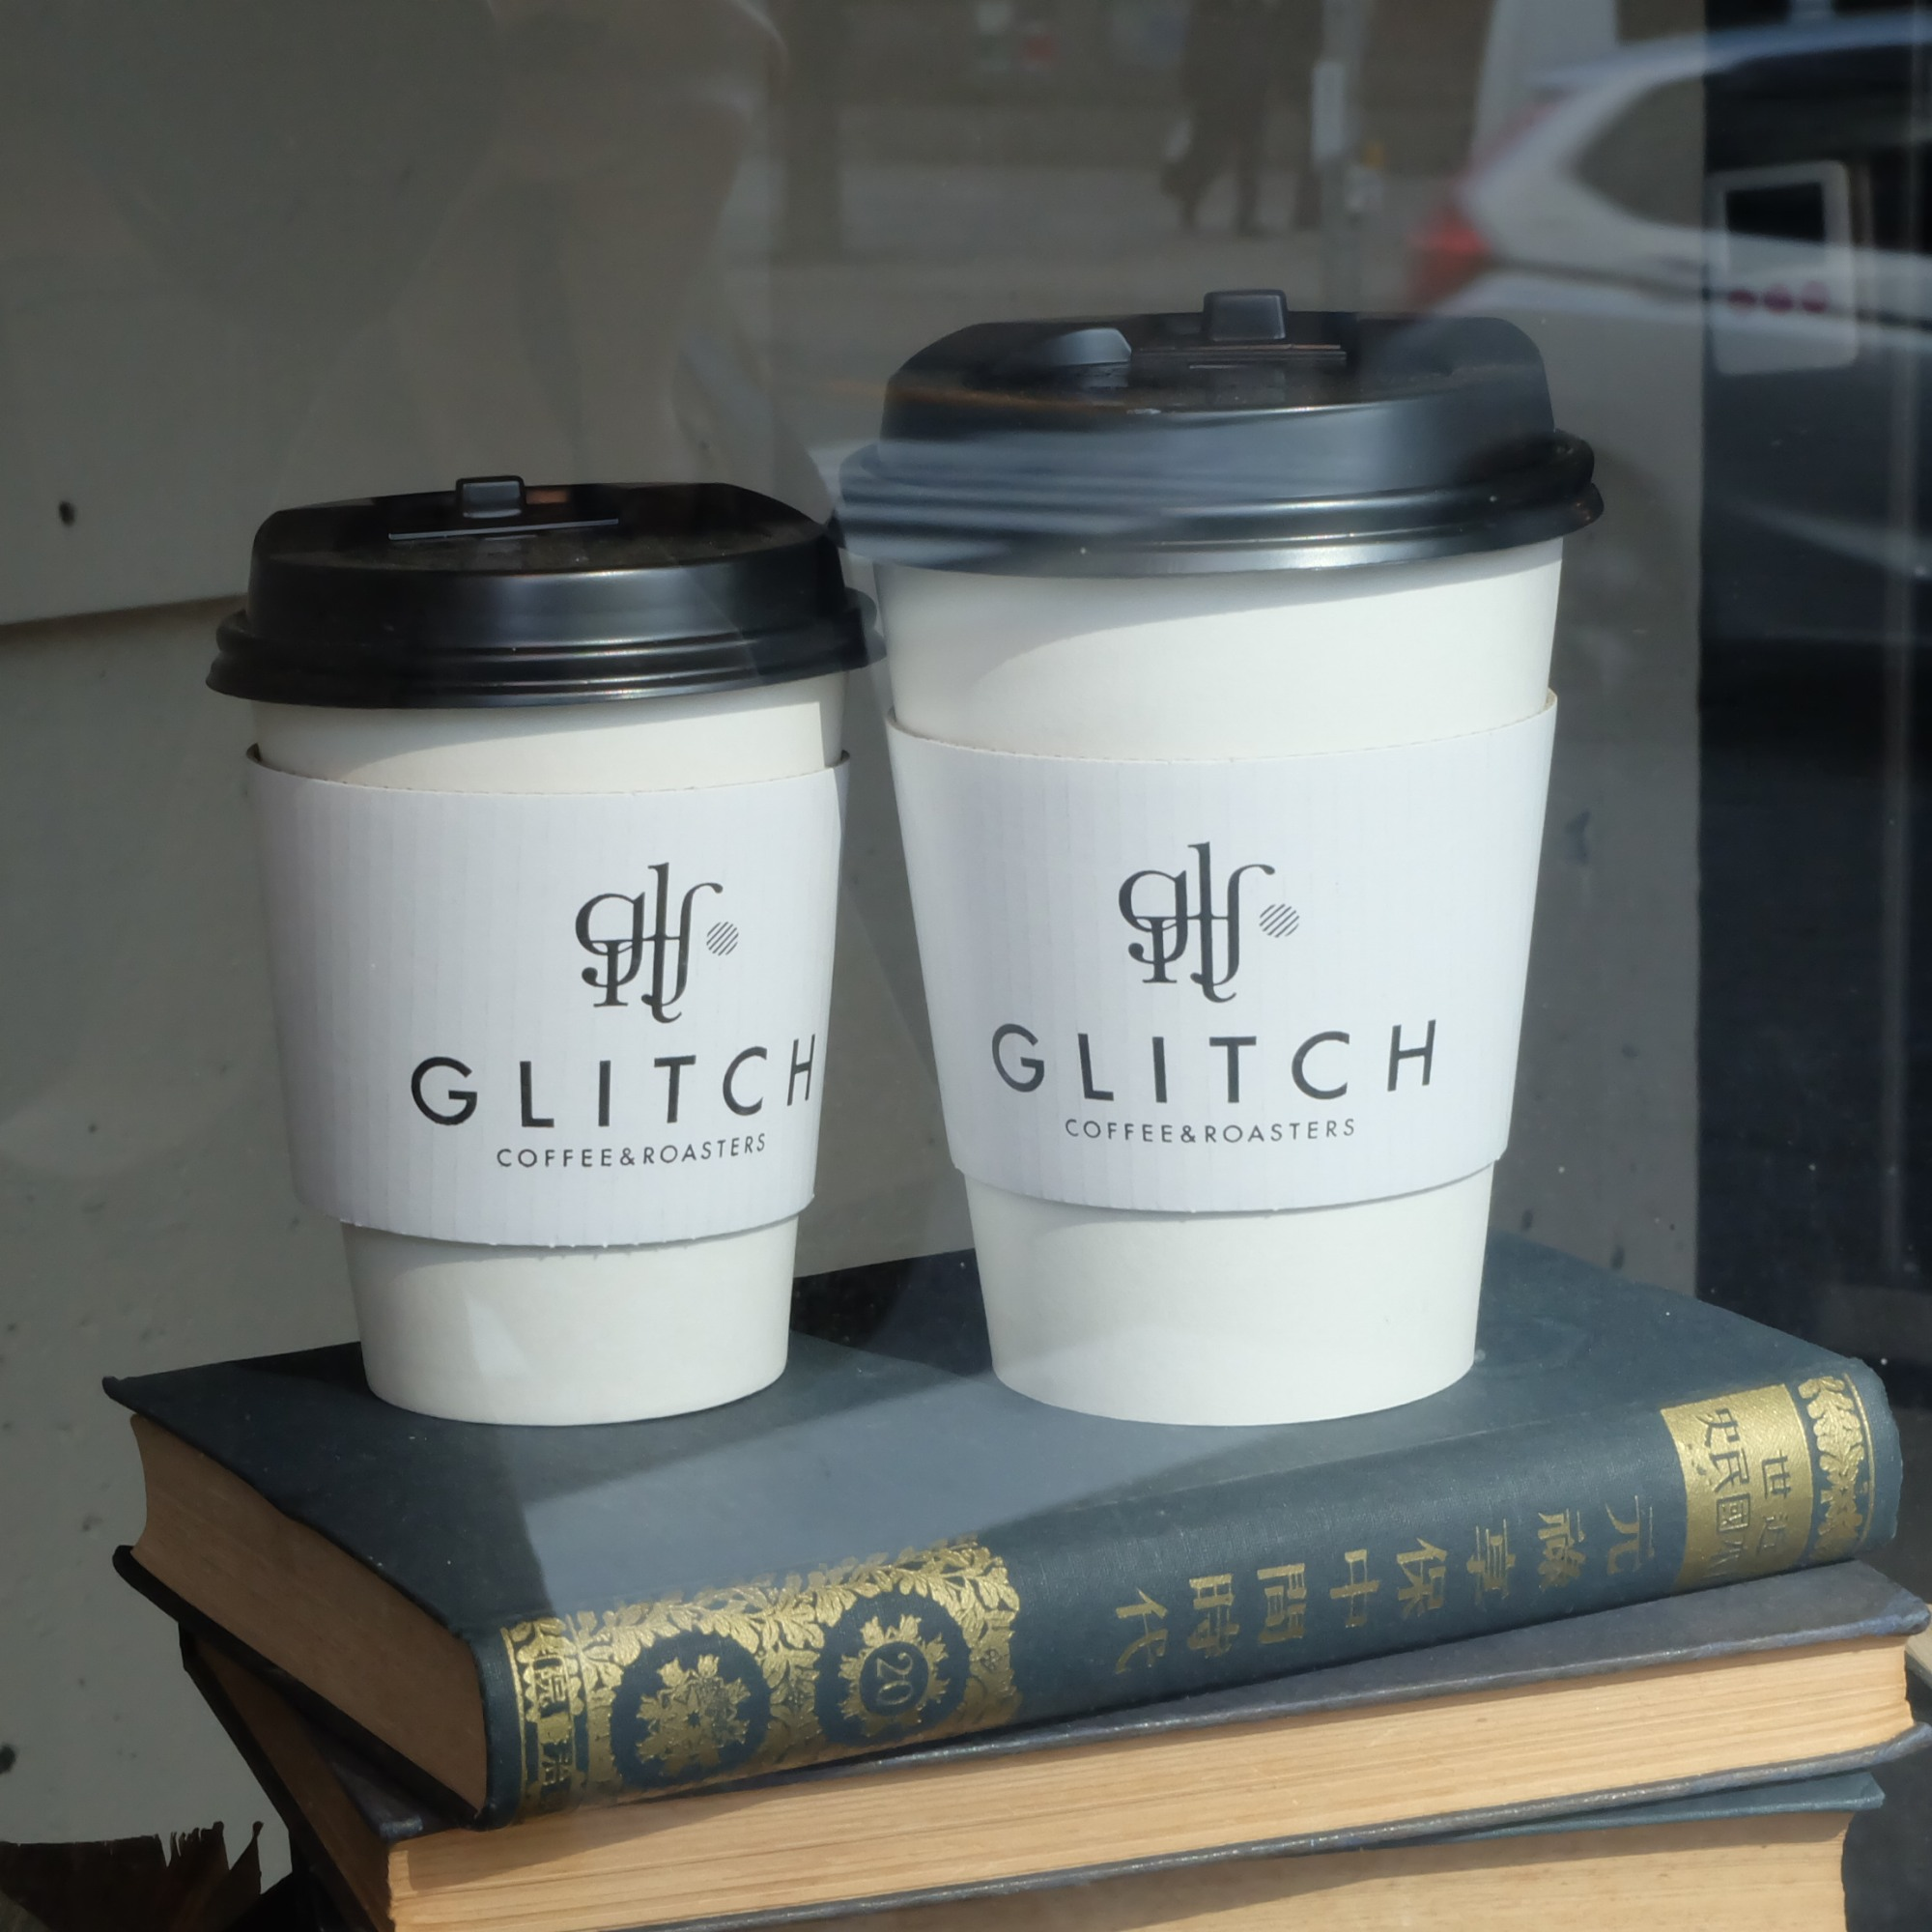 Paper coffee cups on Japanese book at Glitch Coffee and Roasters in Jimbocho Tokyo Japan